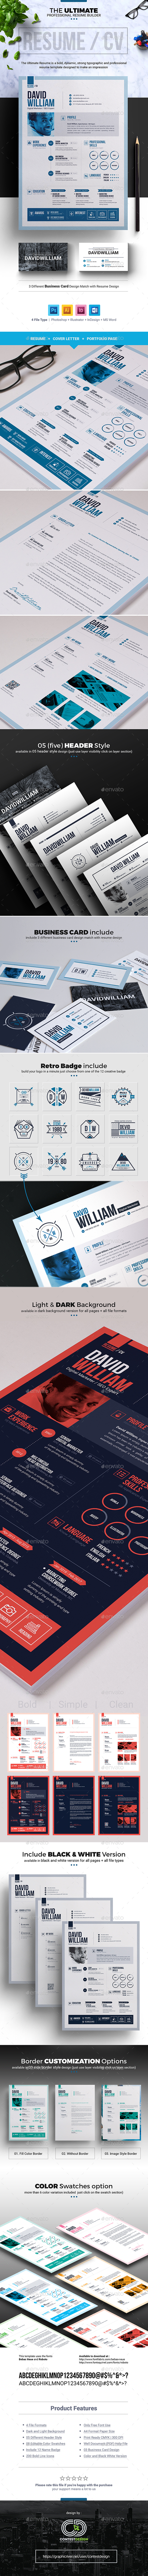 GraphicRiver Job Resume CV Template The Ultimate Professional Resume Builder 20412549